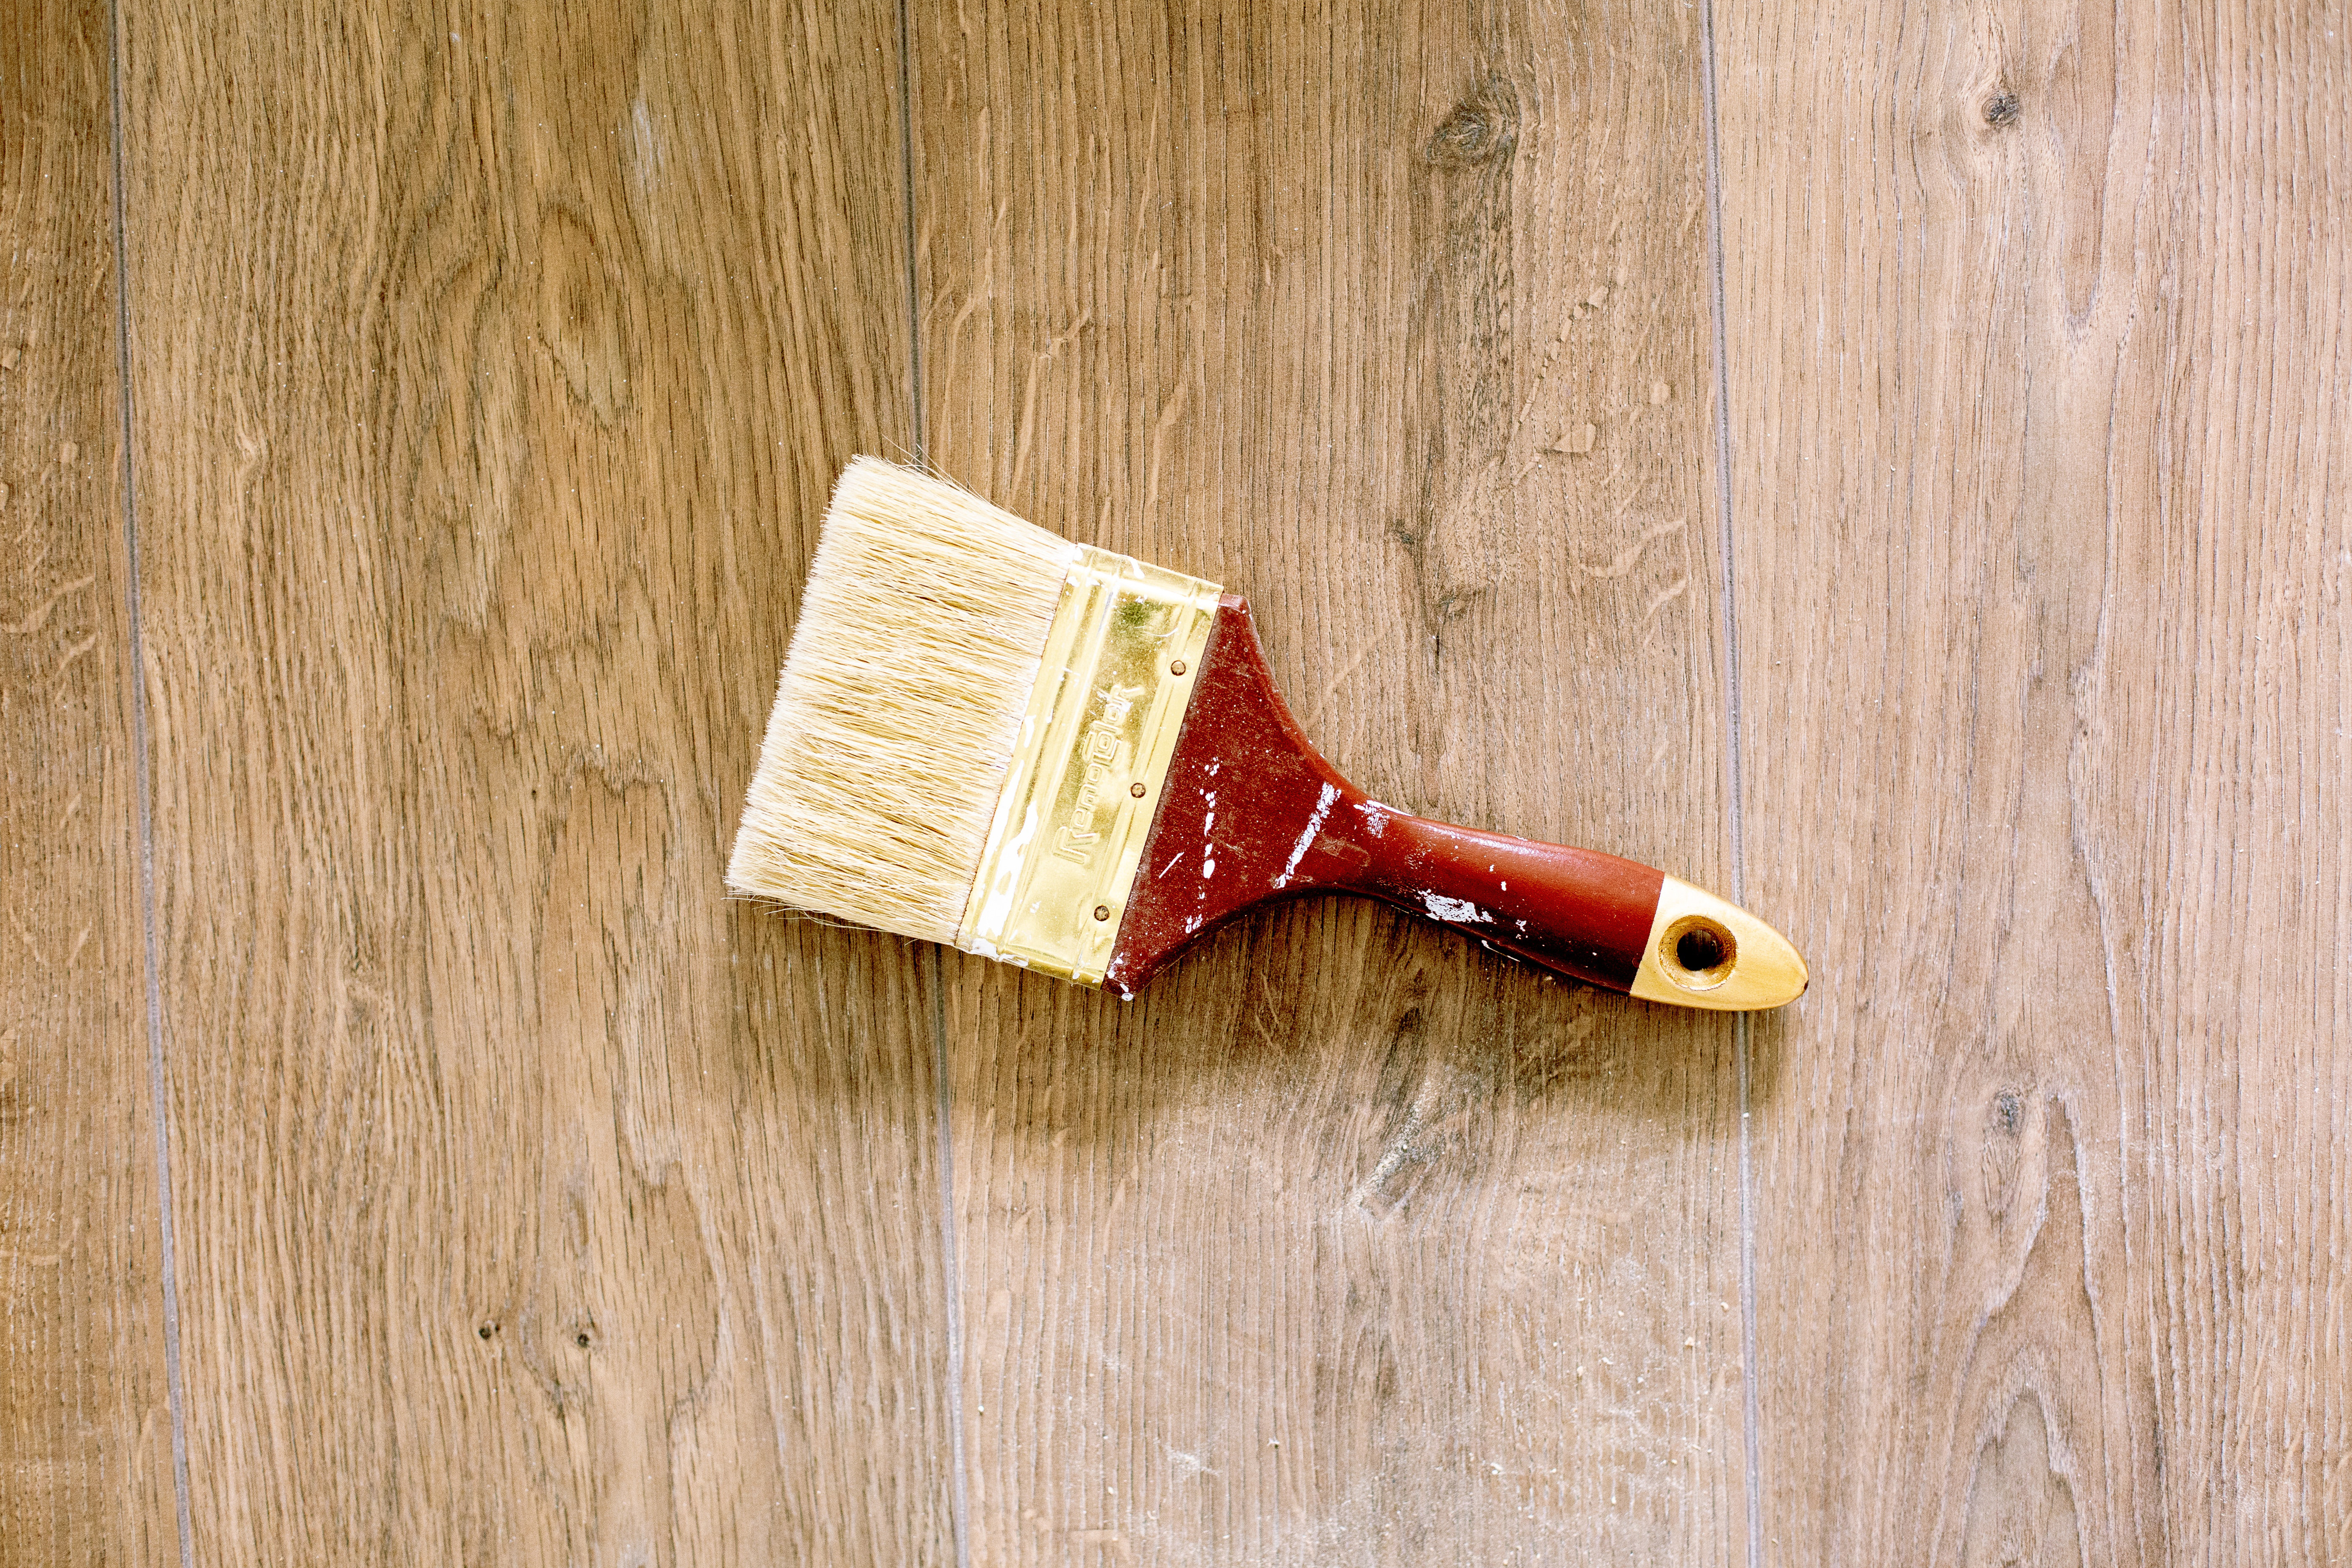 Paint brush on wood for home care and repair